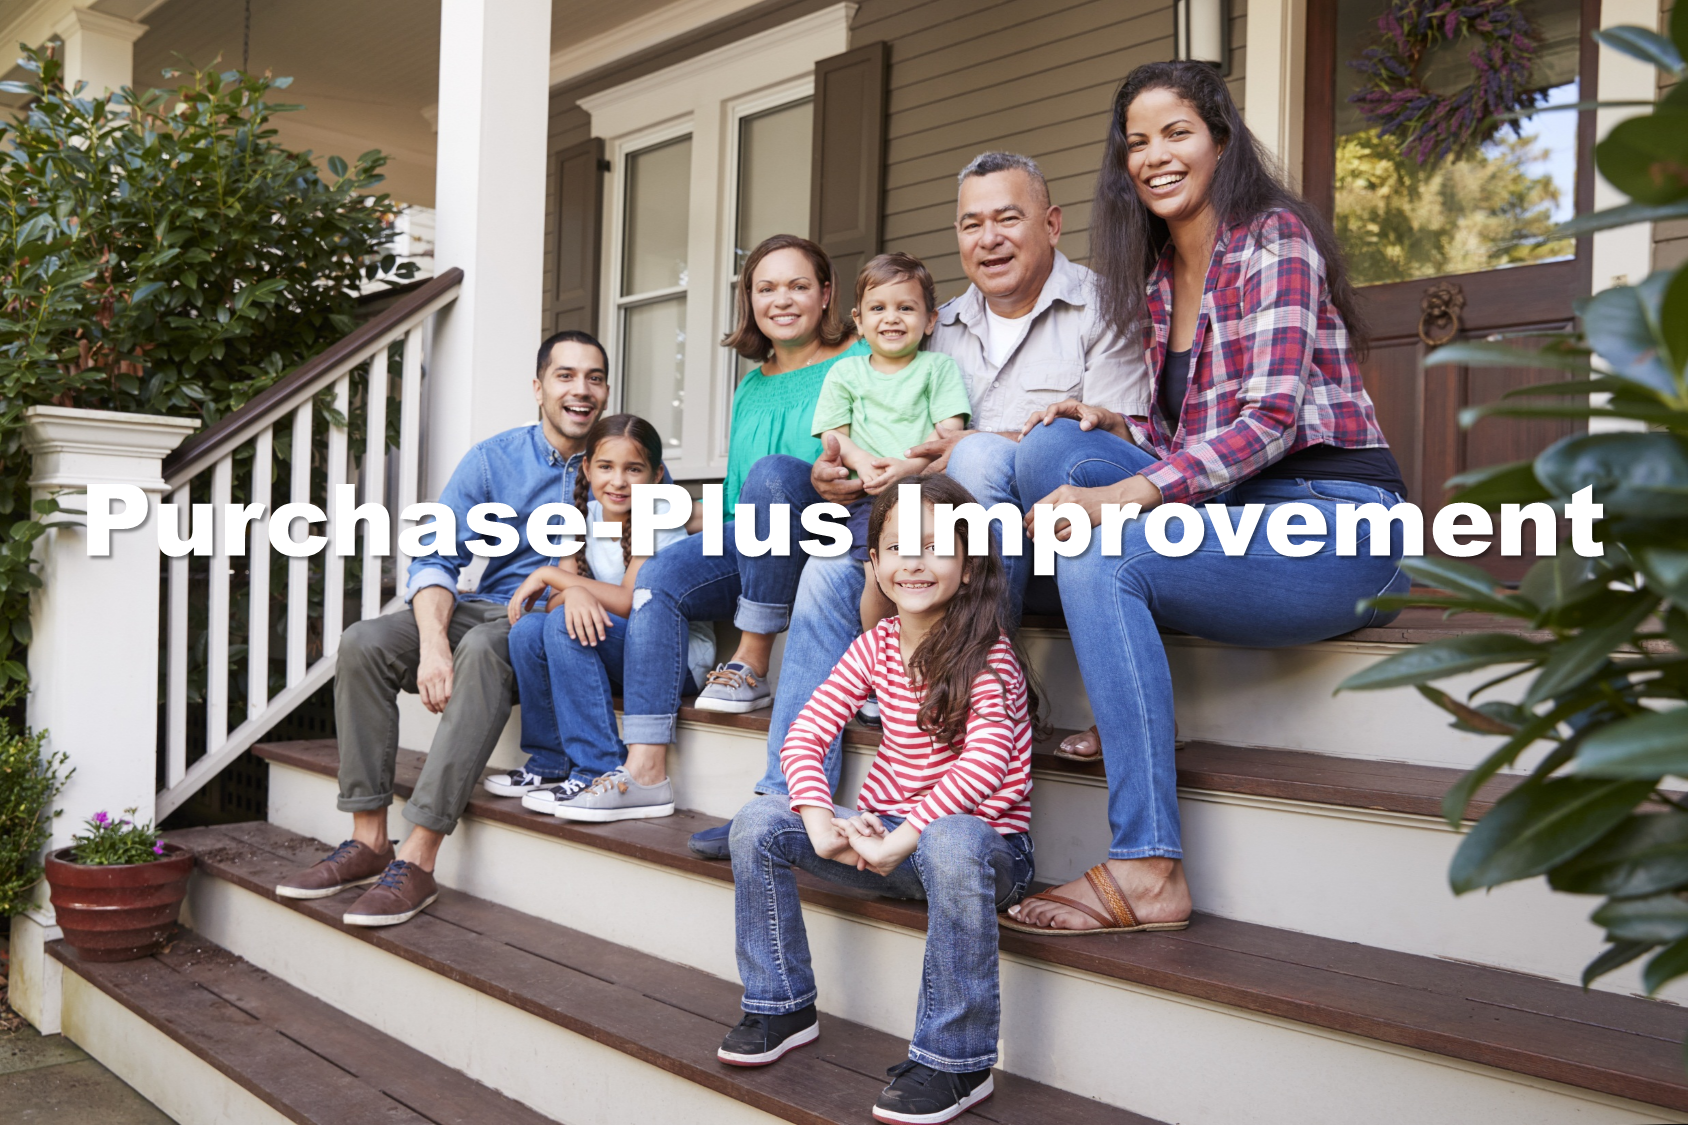 picture of extended hispanic family sitting on front porch steps